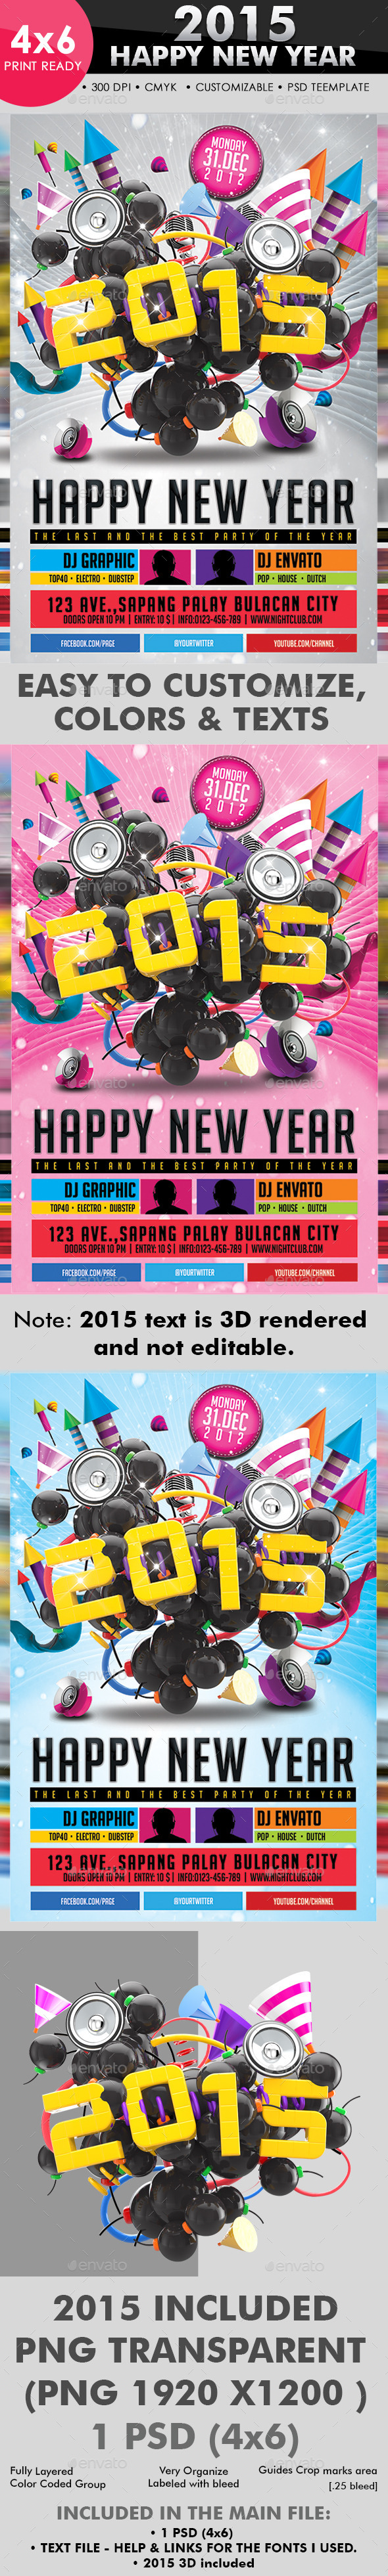 2015 Happy New Year Flyer Template - Clubs & Parties Events